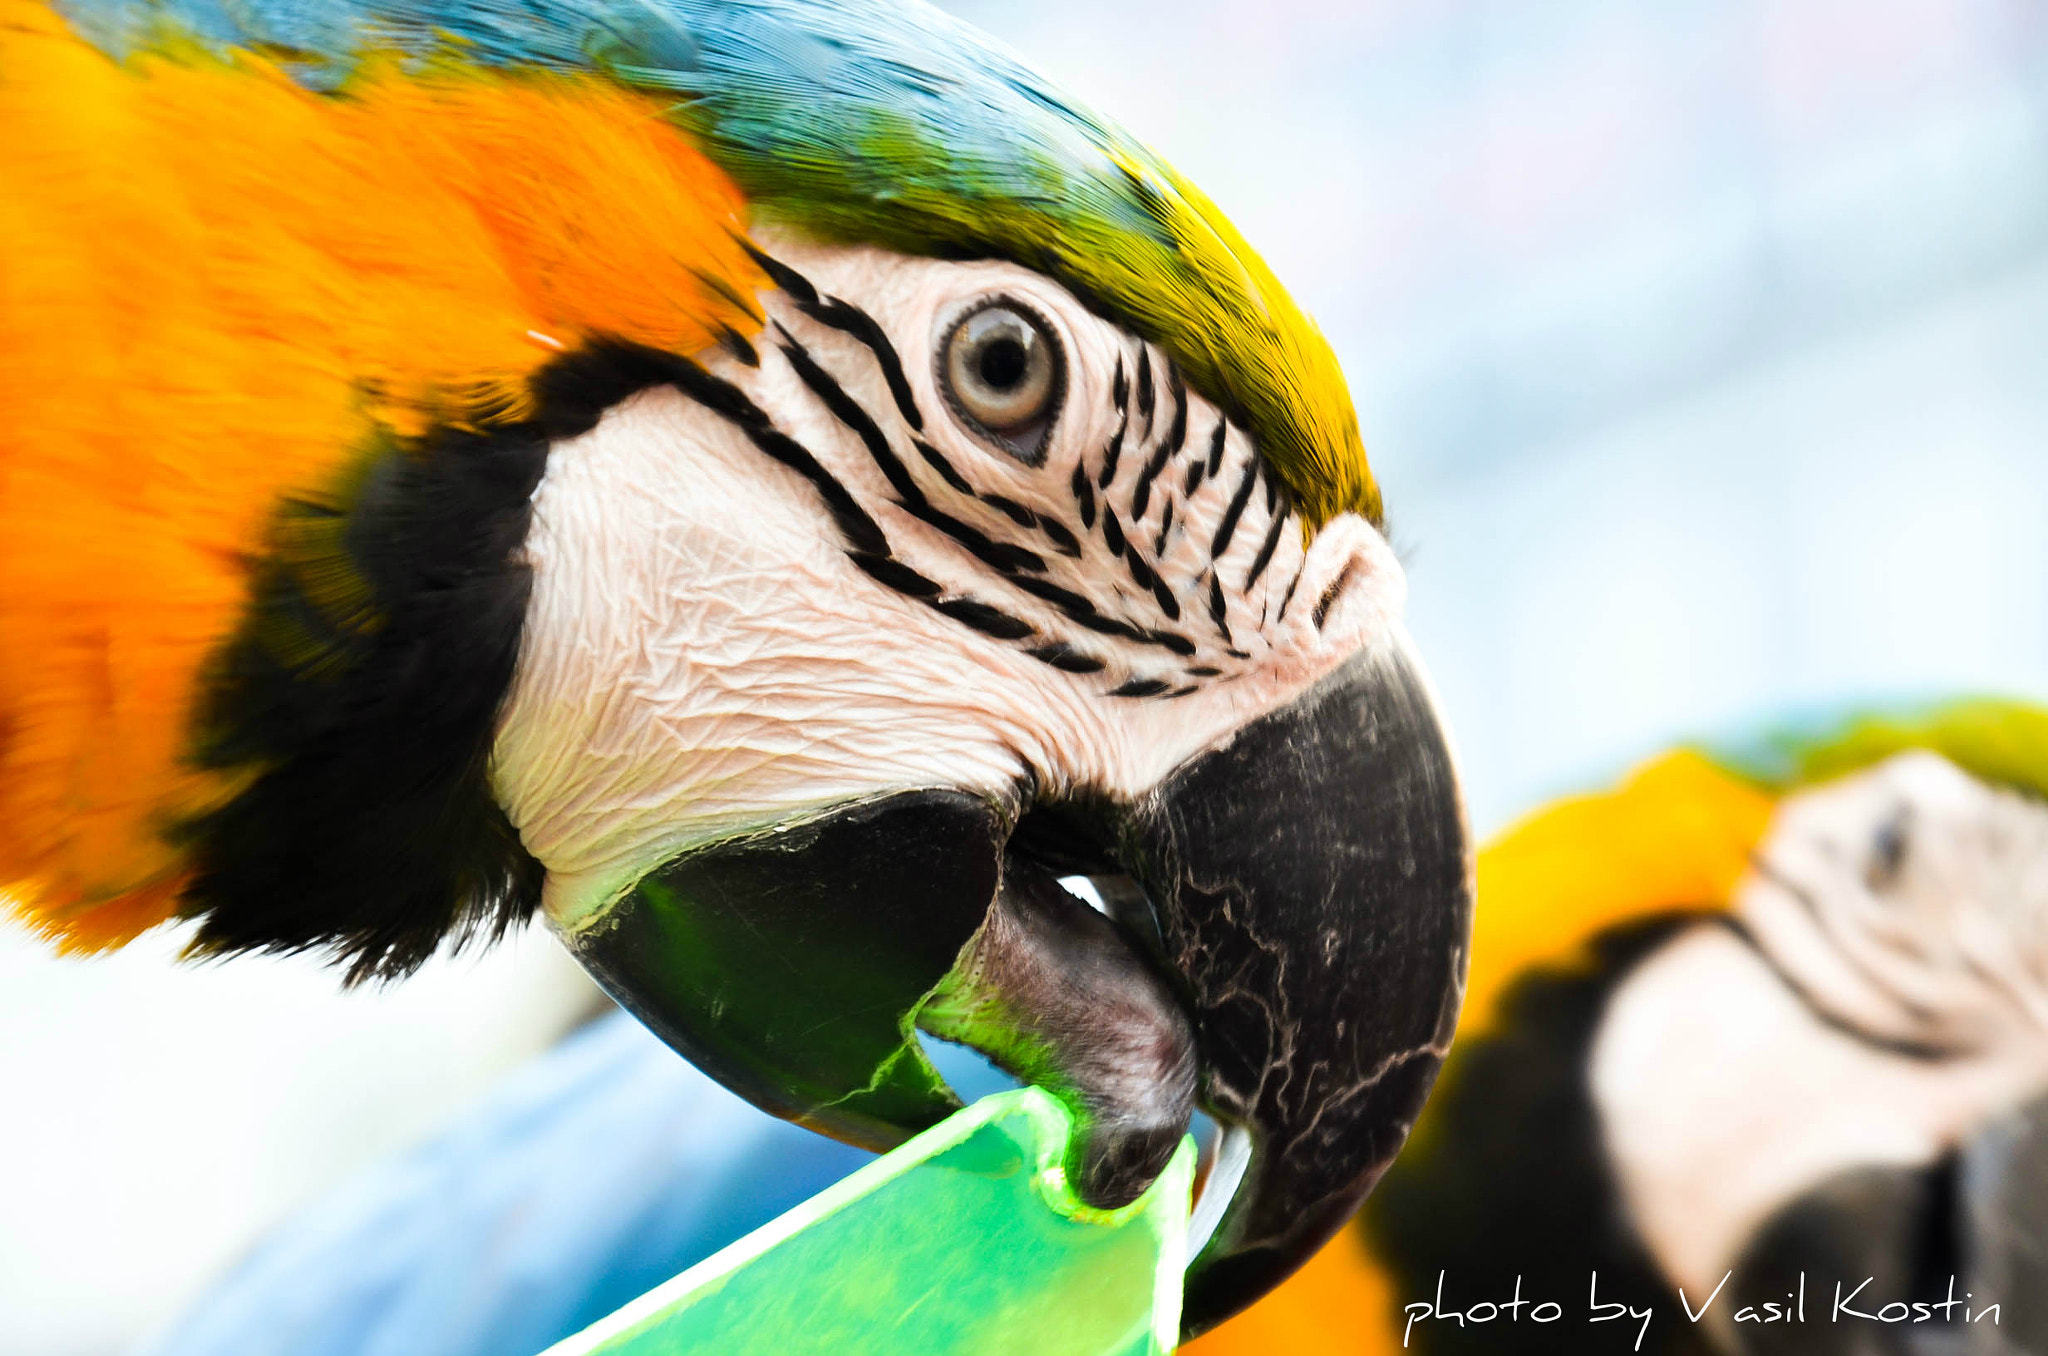 Photograph Papageis toy by Vasil Kostin on 500px